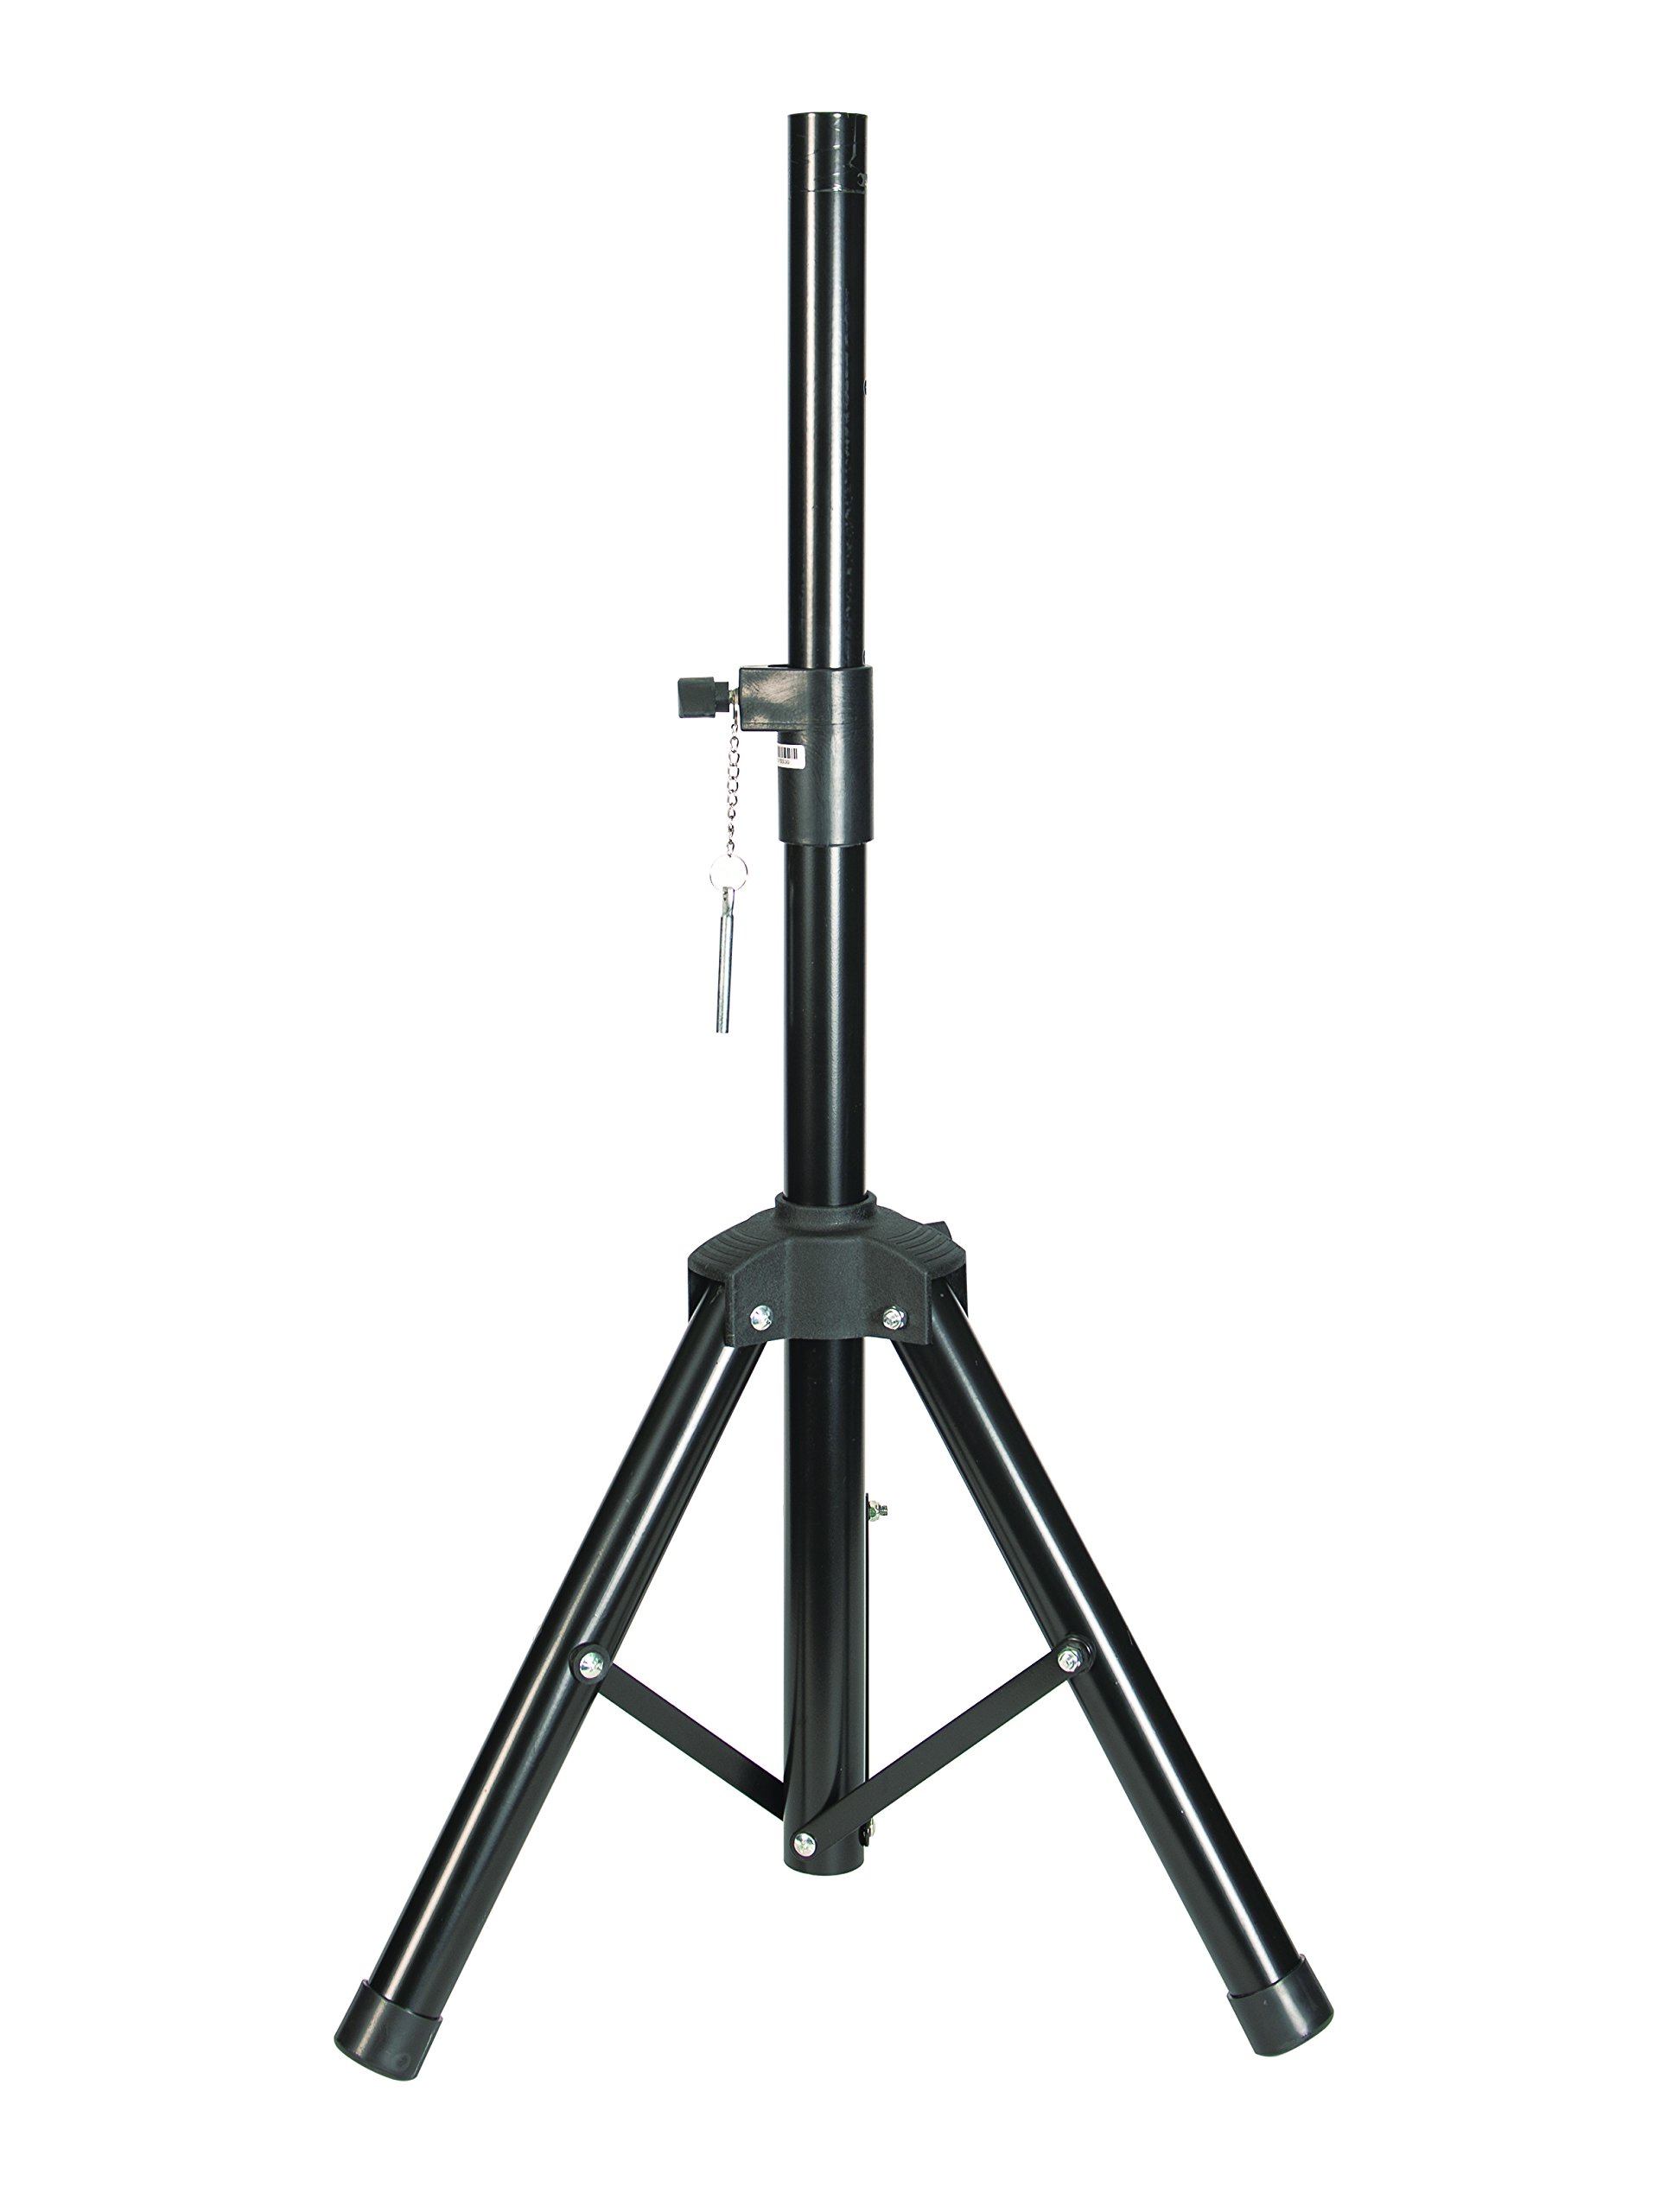 """Precision Speaker Stand with adjustable height from 25.5"""" to 58"""" and 35mm Diameter Universal Tripod w/ Support Plate"""